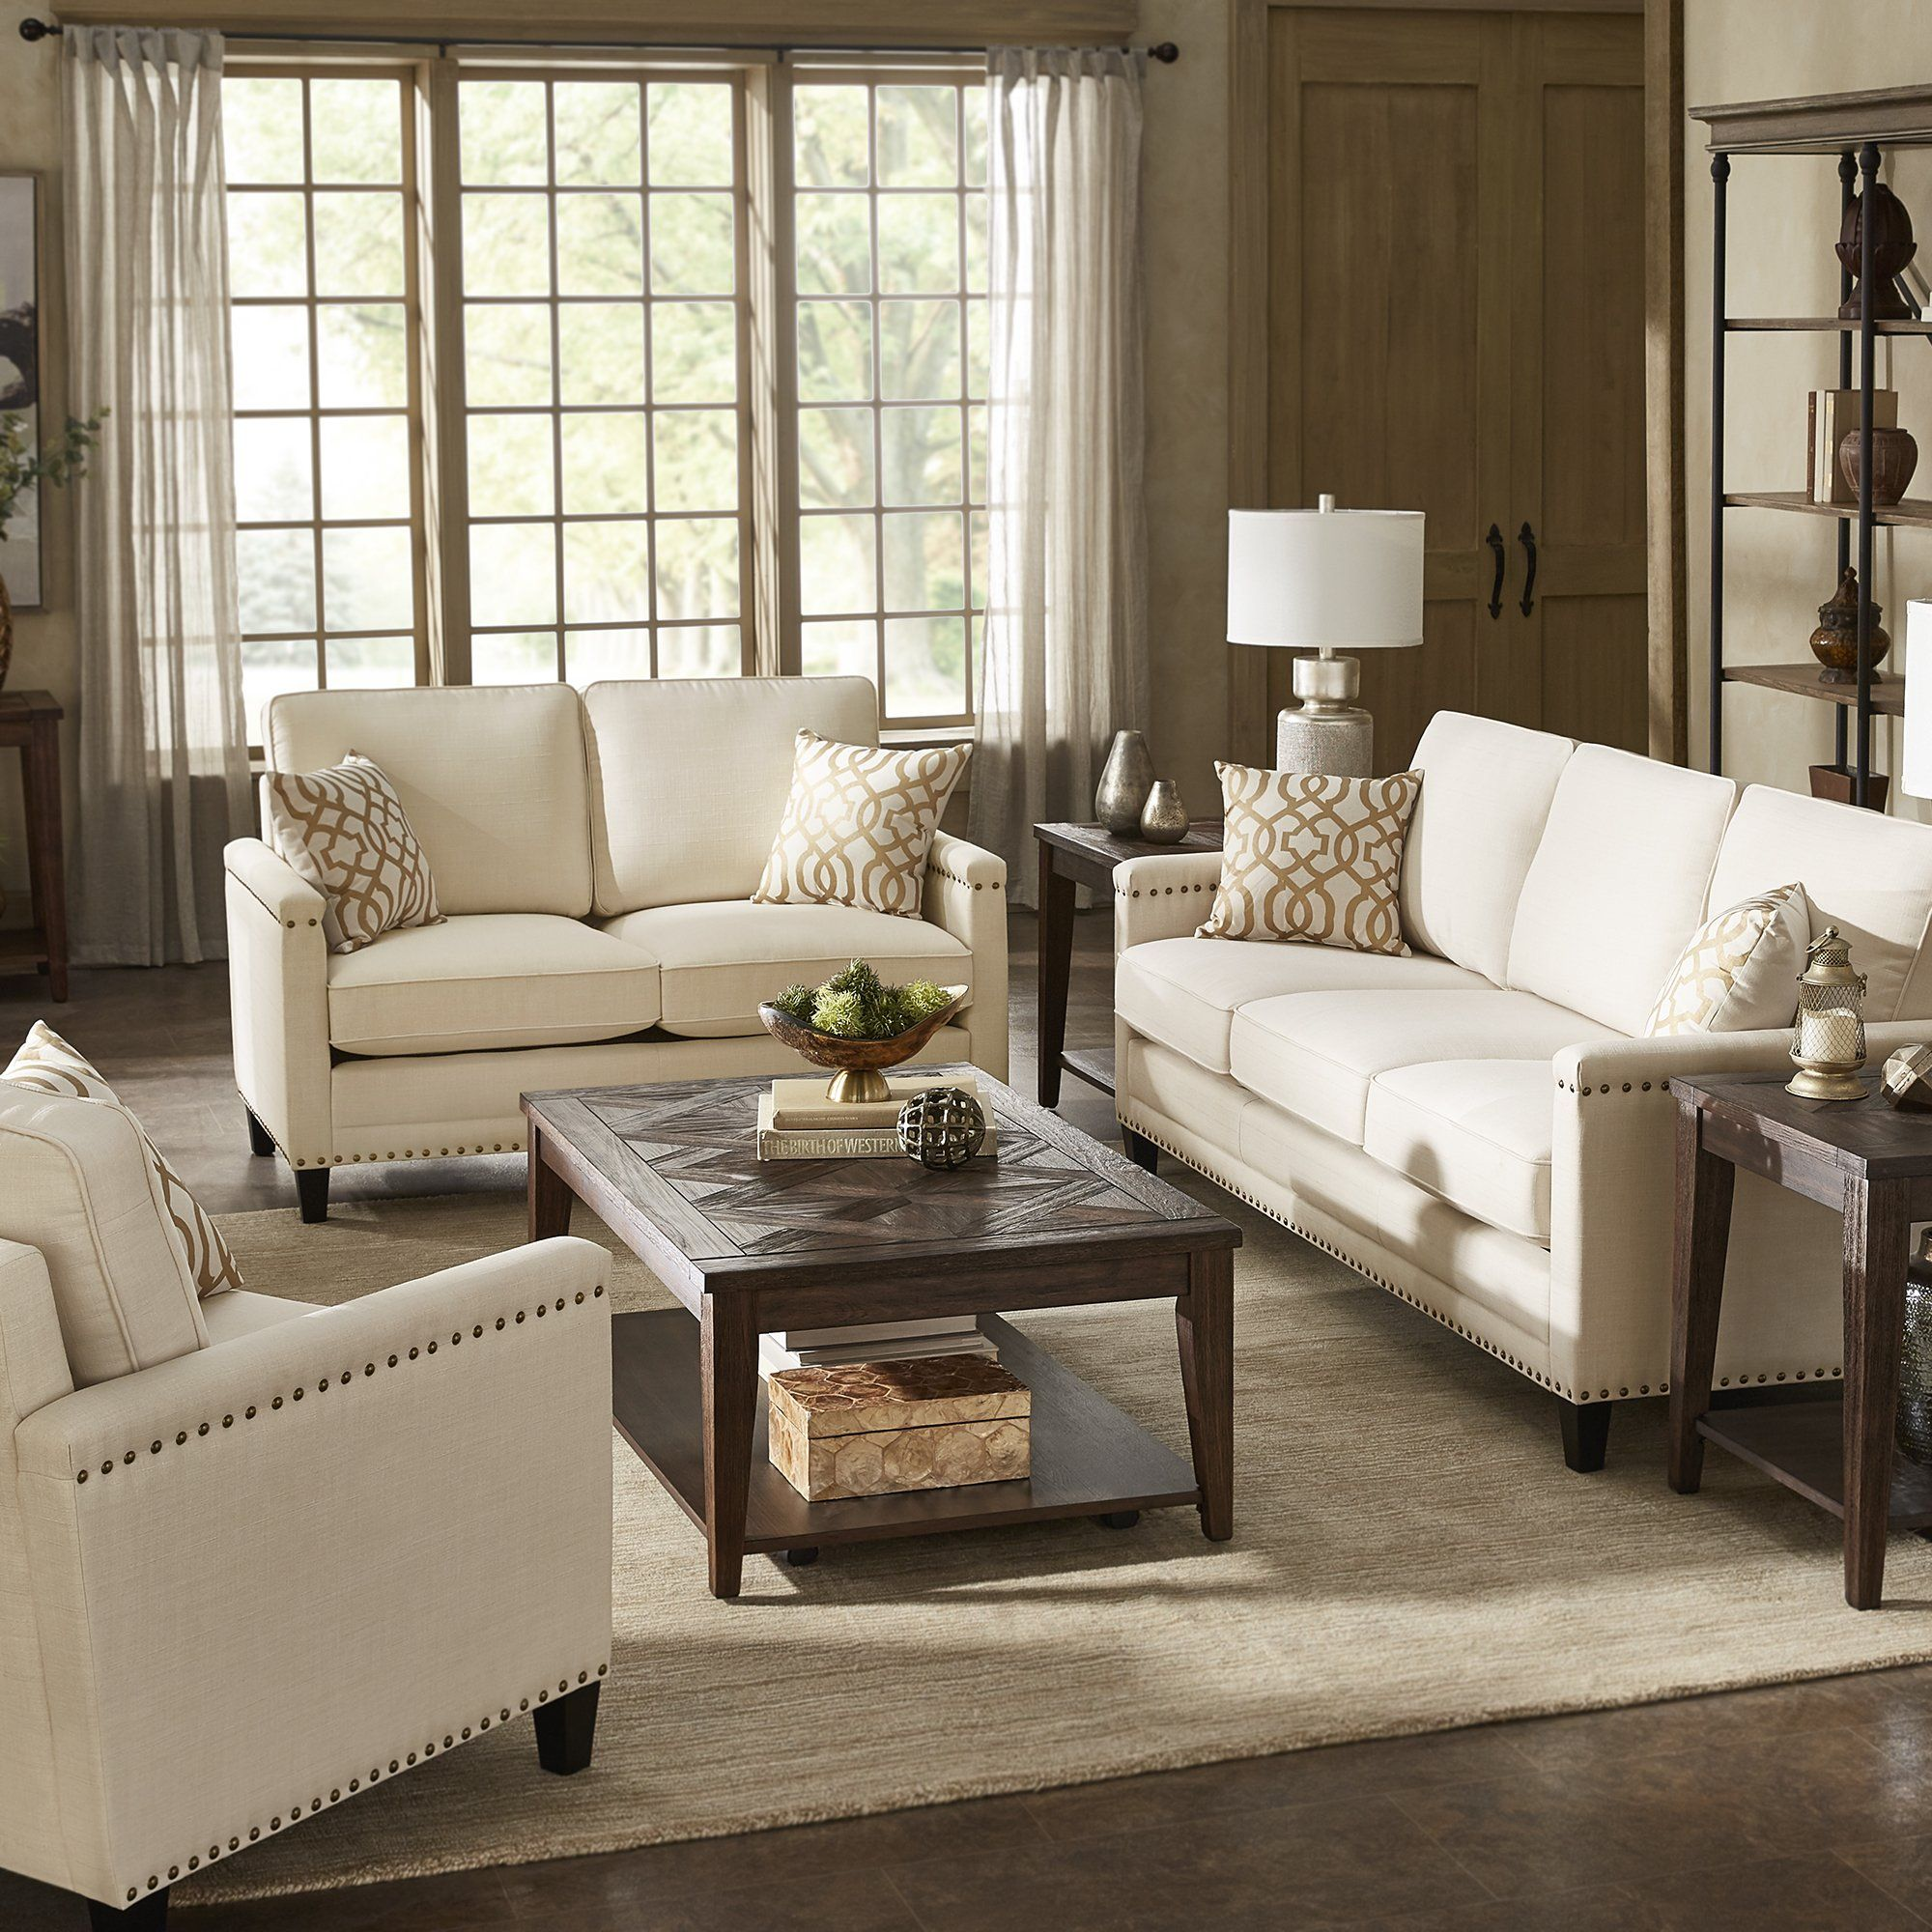 Remarkable Stoddard Ivory Fabric Seating With Nailhead Trim By Inspire Squirreltailoven Fun Painted Chair Ideas Images Squirreltailovenorg